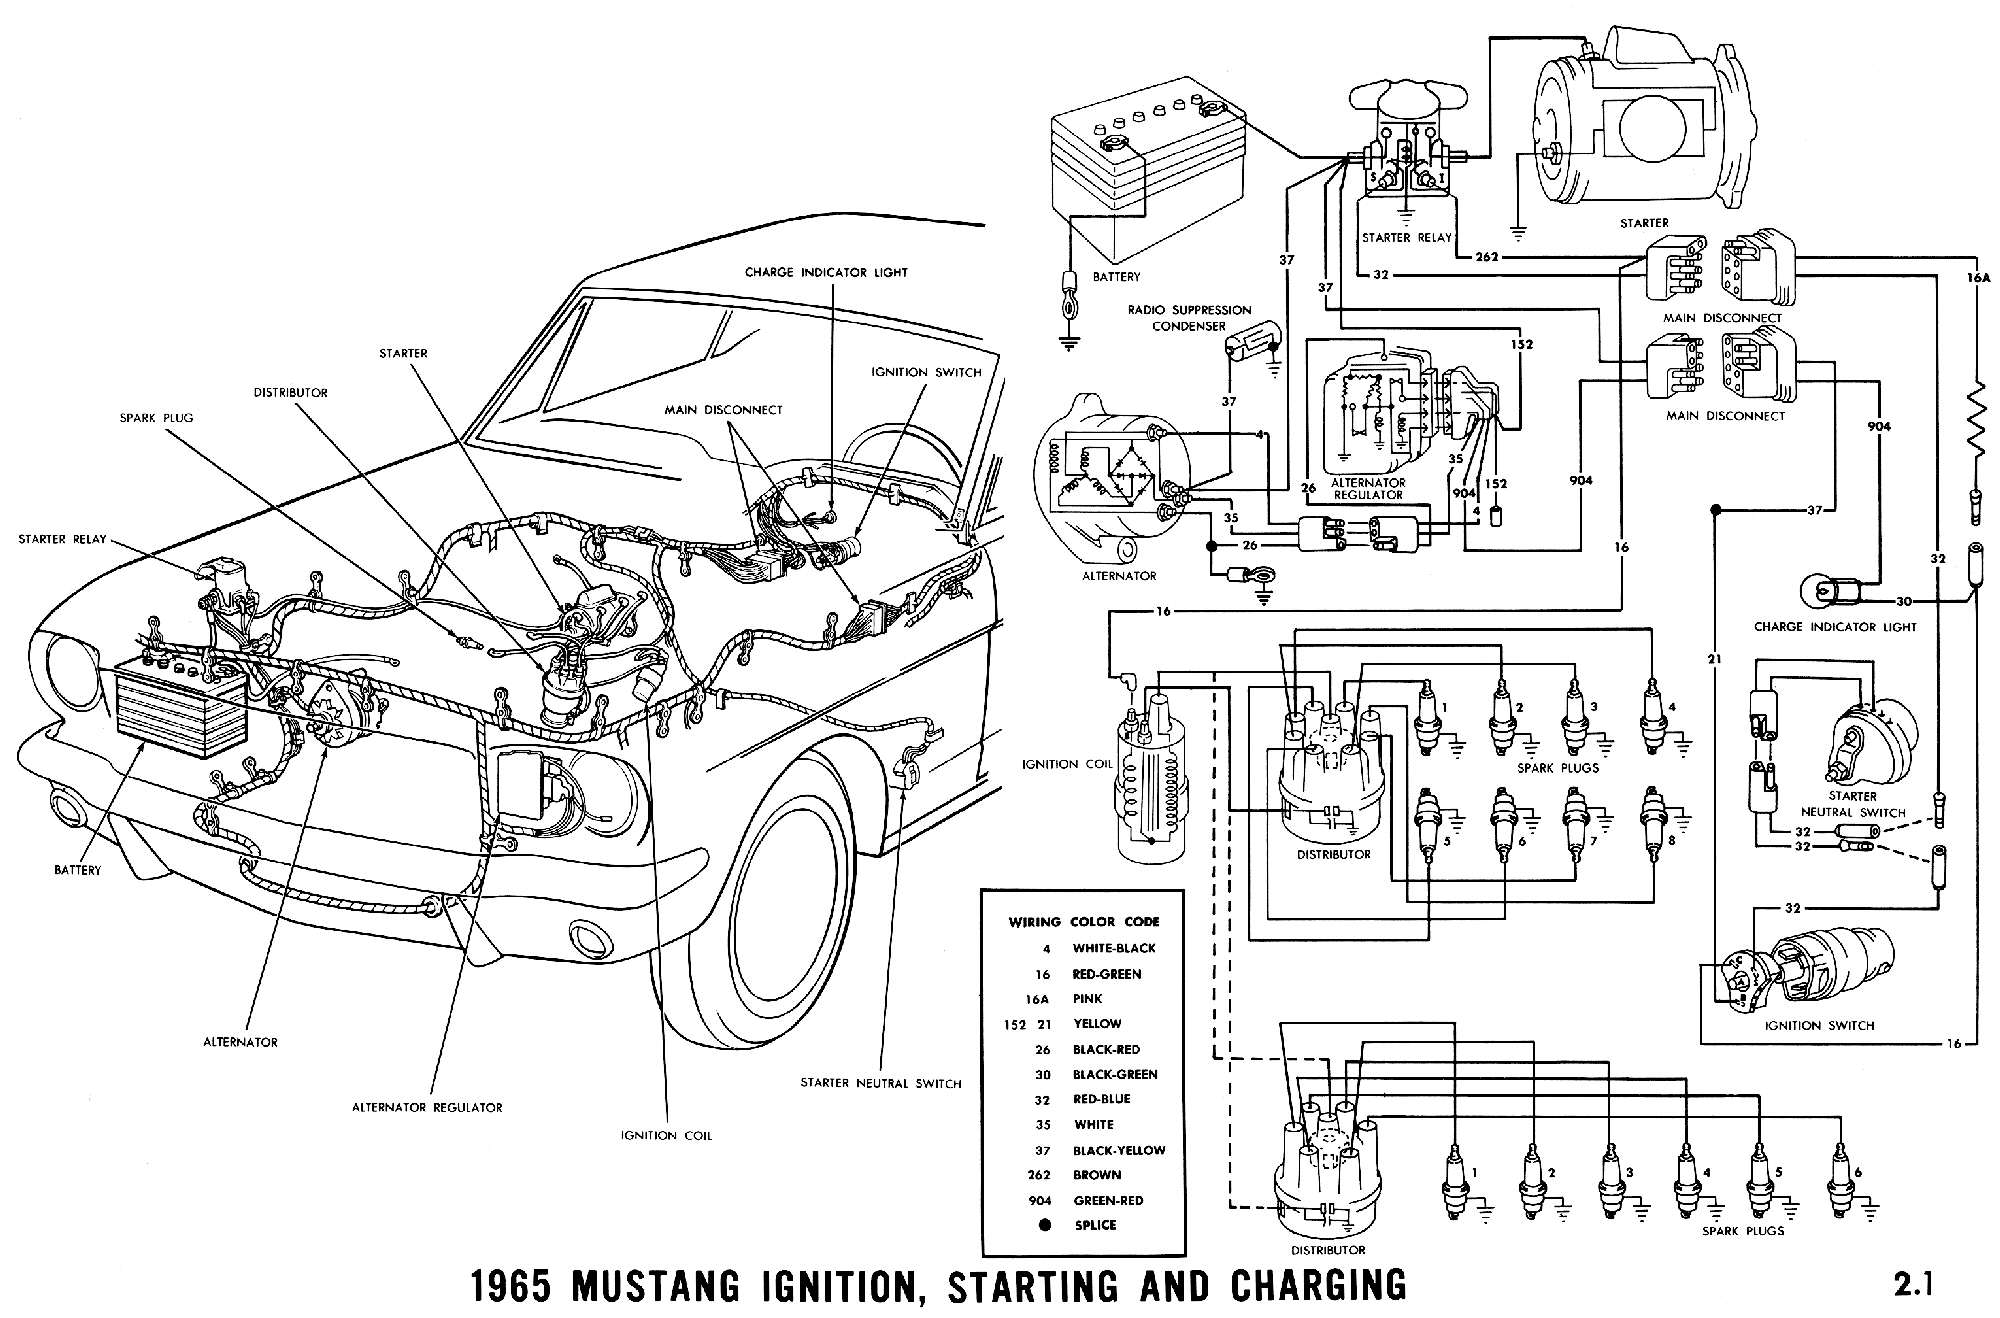 1965c 1965 mustang wiring diagrams average joe restoration mustang parts diagram at bayanpartner.co